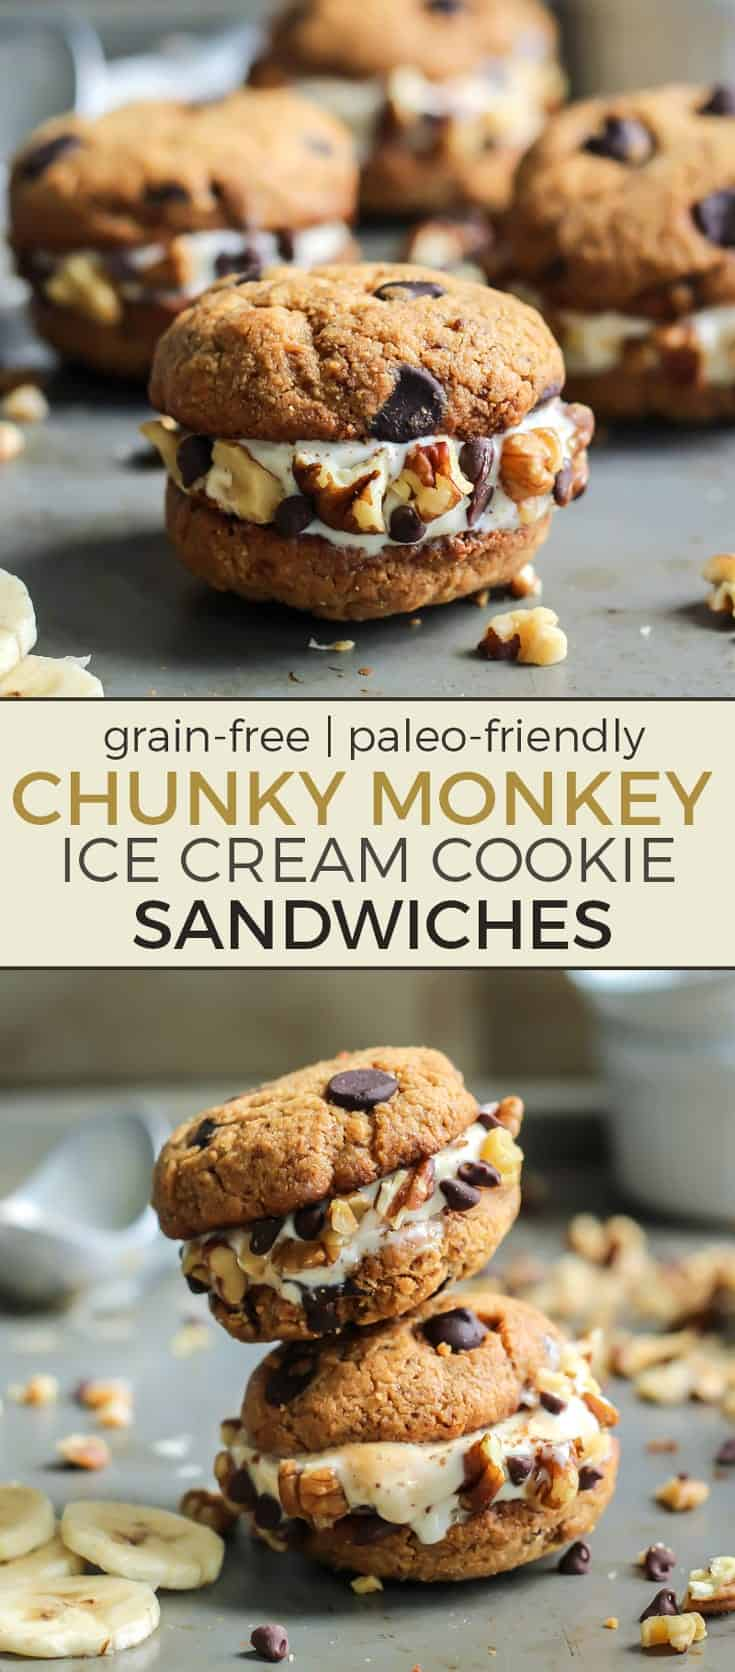 These Chunky Monkey Ice Cream Cookie Sandwiches are too good! The cookies are grain-free and paleo, and you use your favorite banana ice cream for a dairy-free friendly treat!